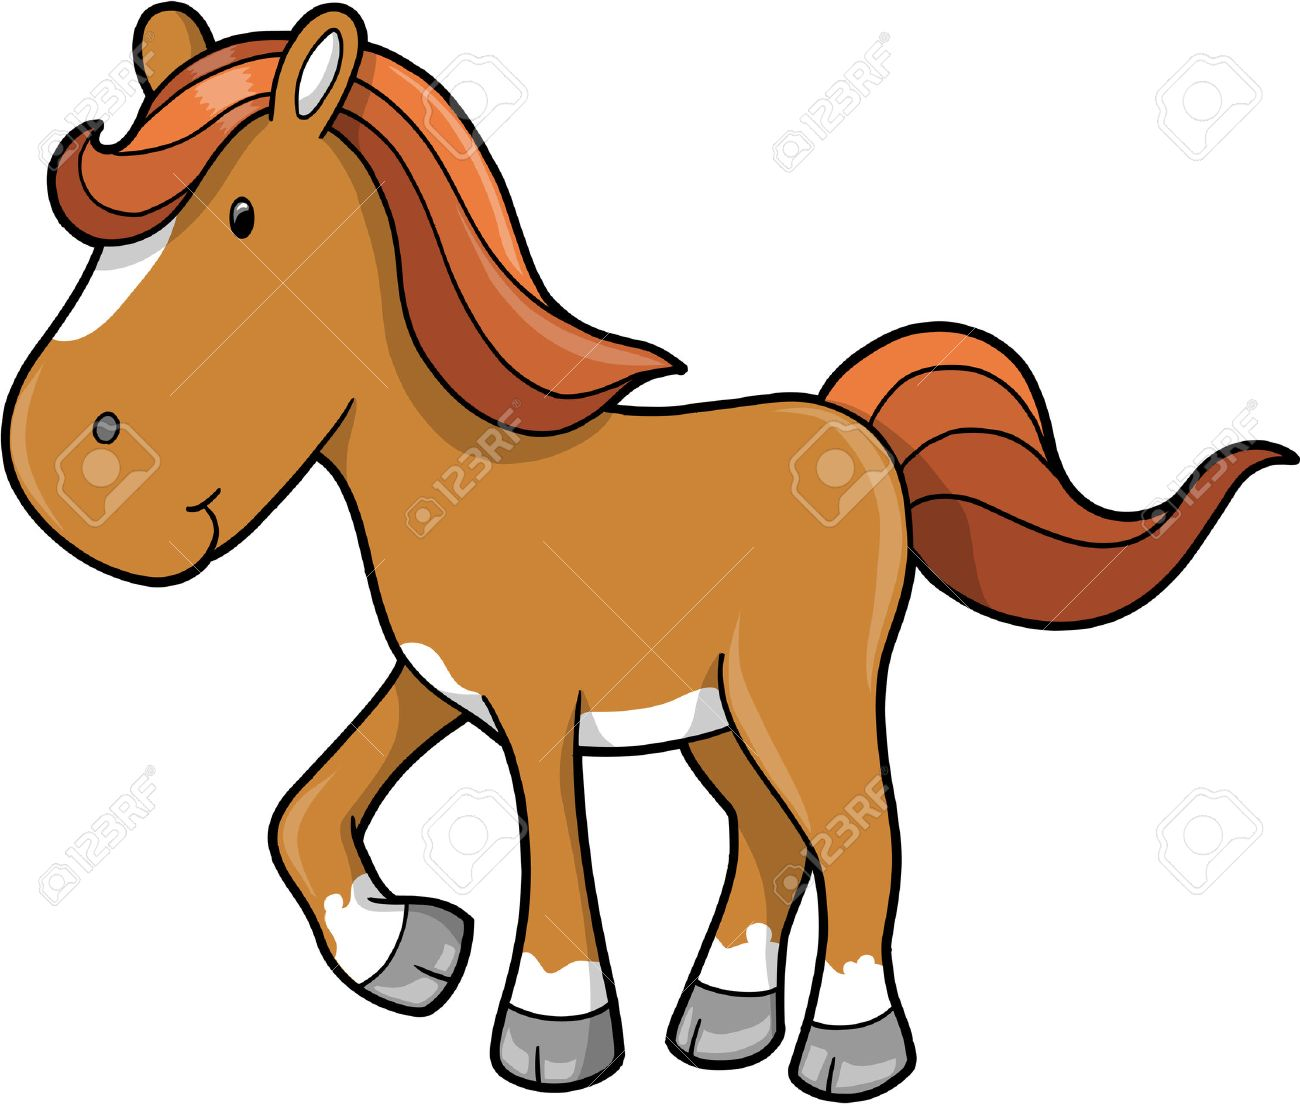 Horse Vector Illustration Royalty Free Cliparts Vectors And Stock Illustration Image 4792597